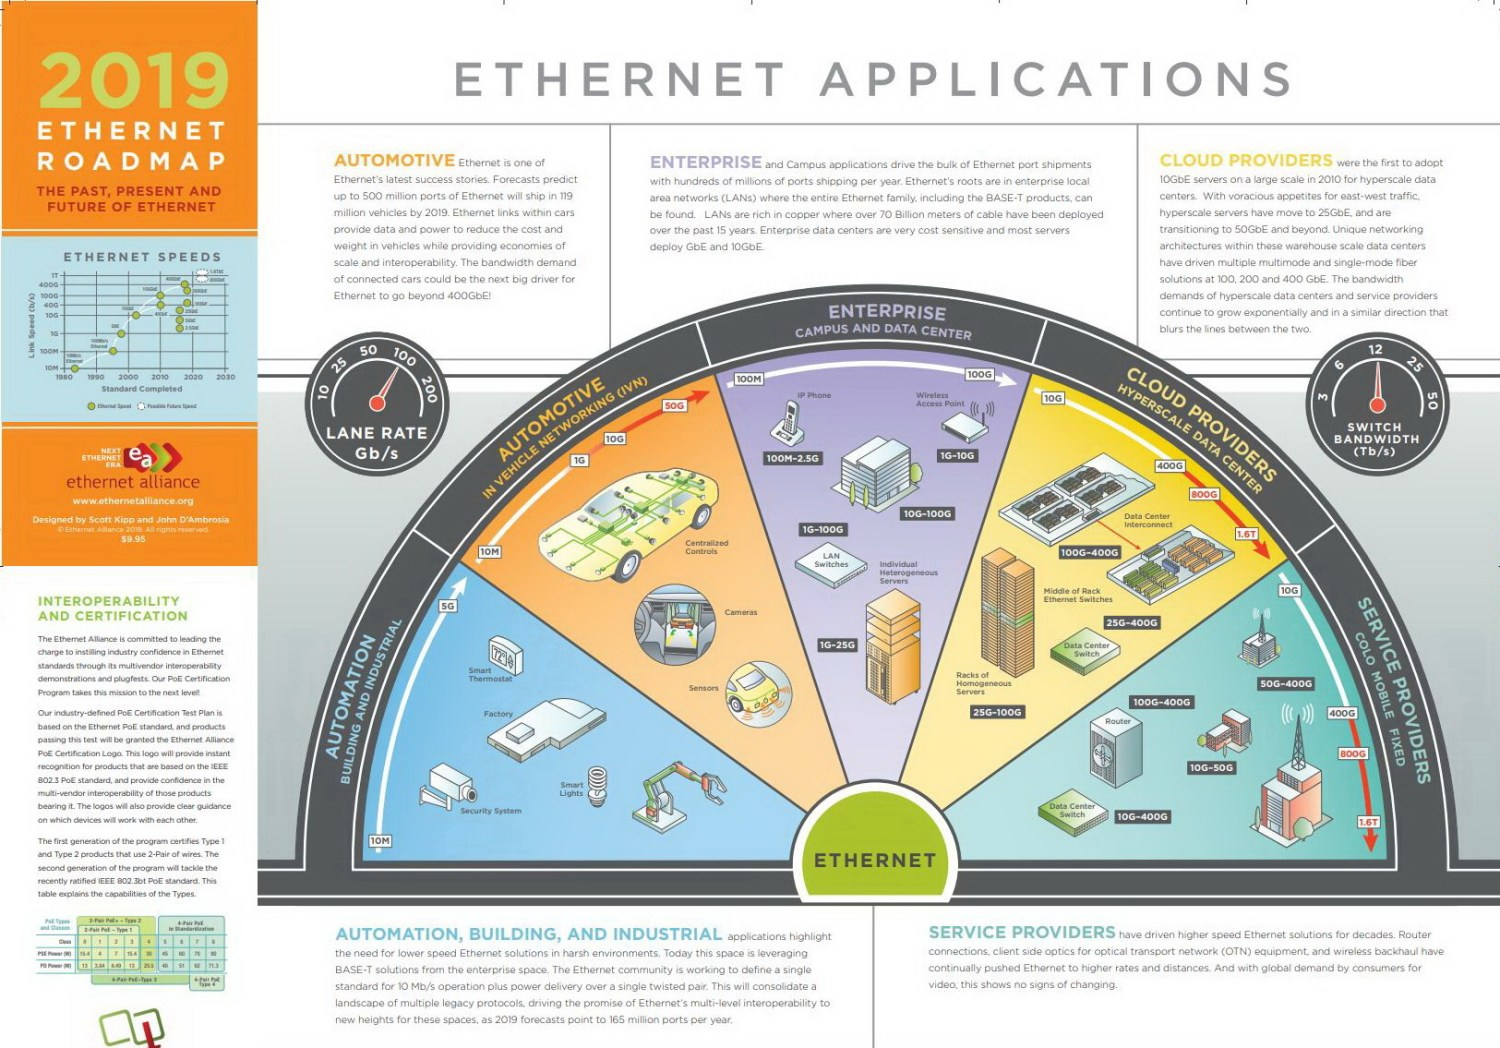 ethernet roadmap 2019